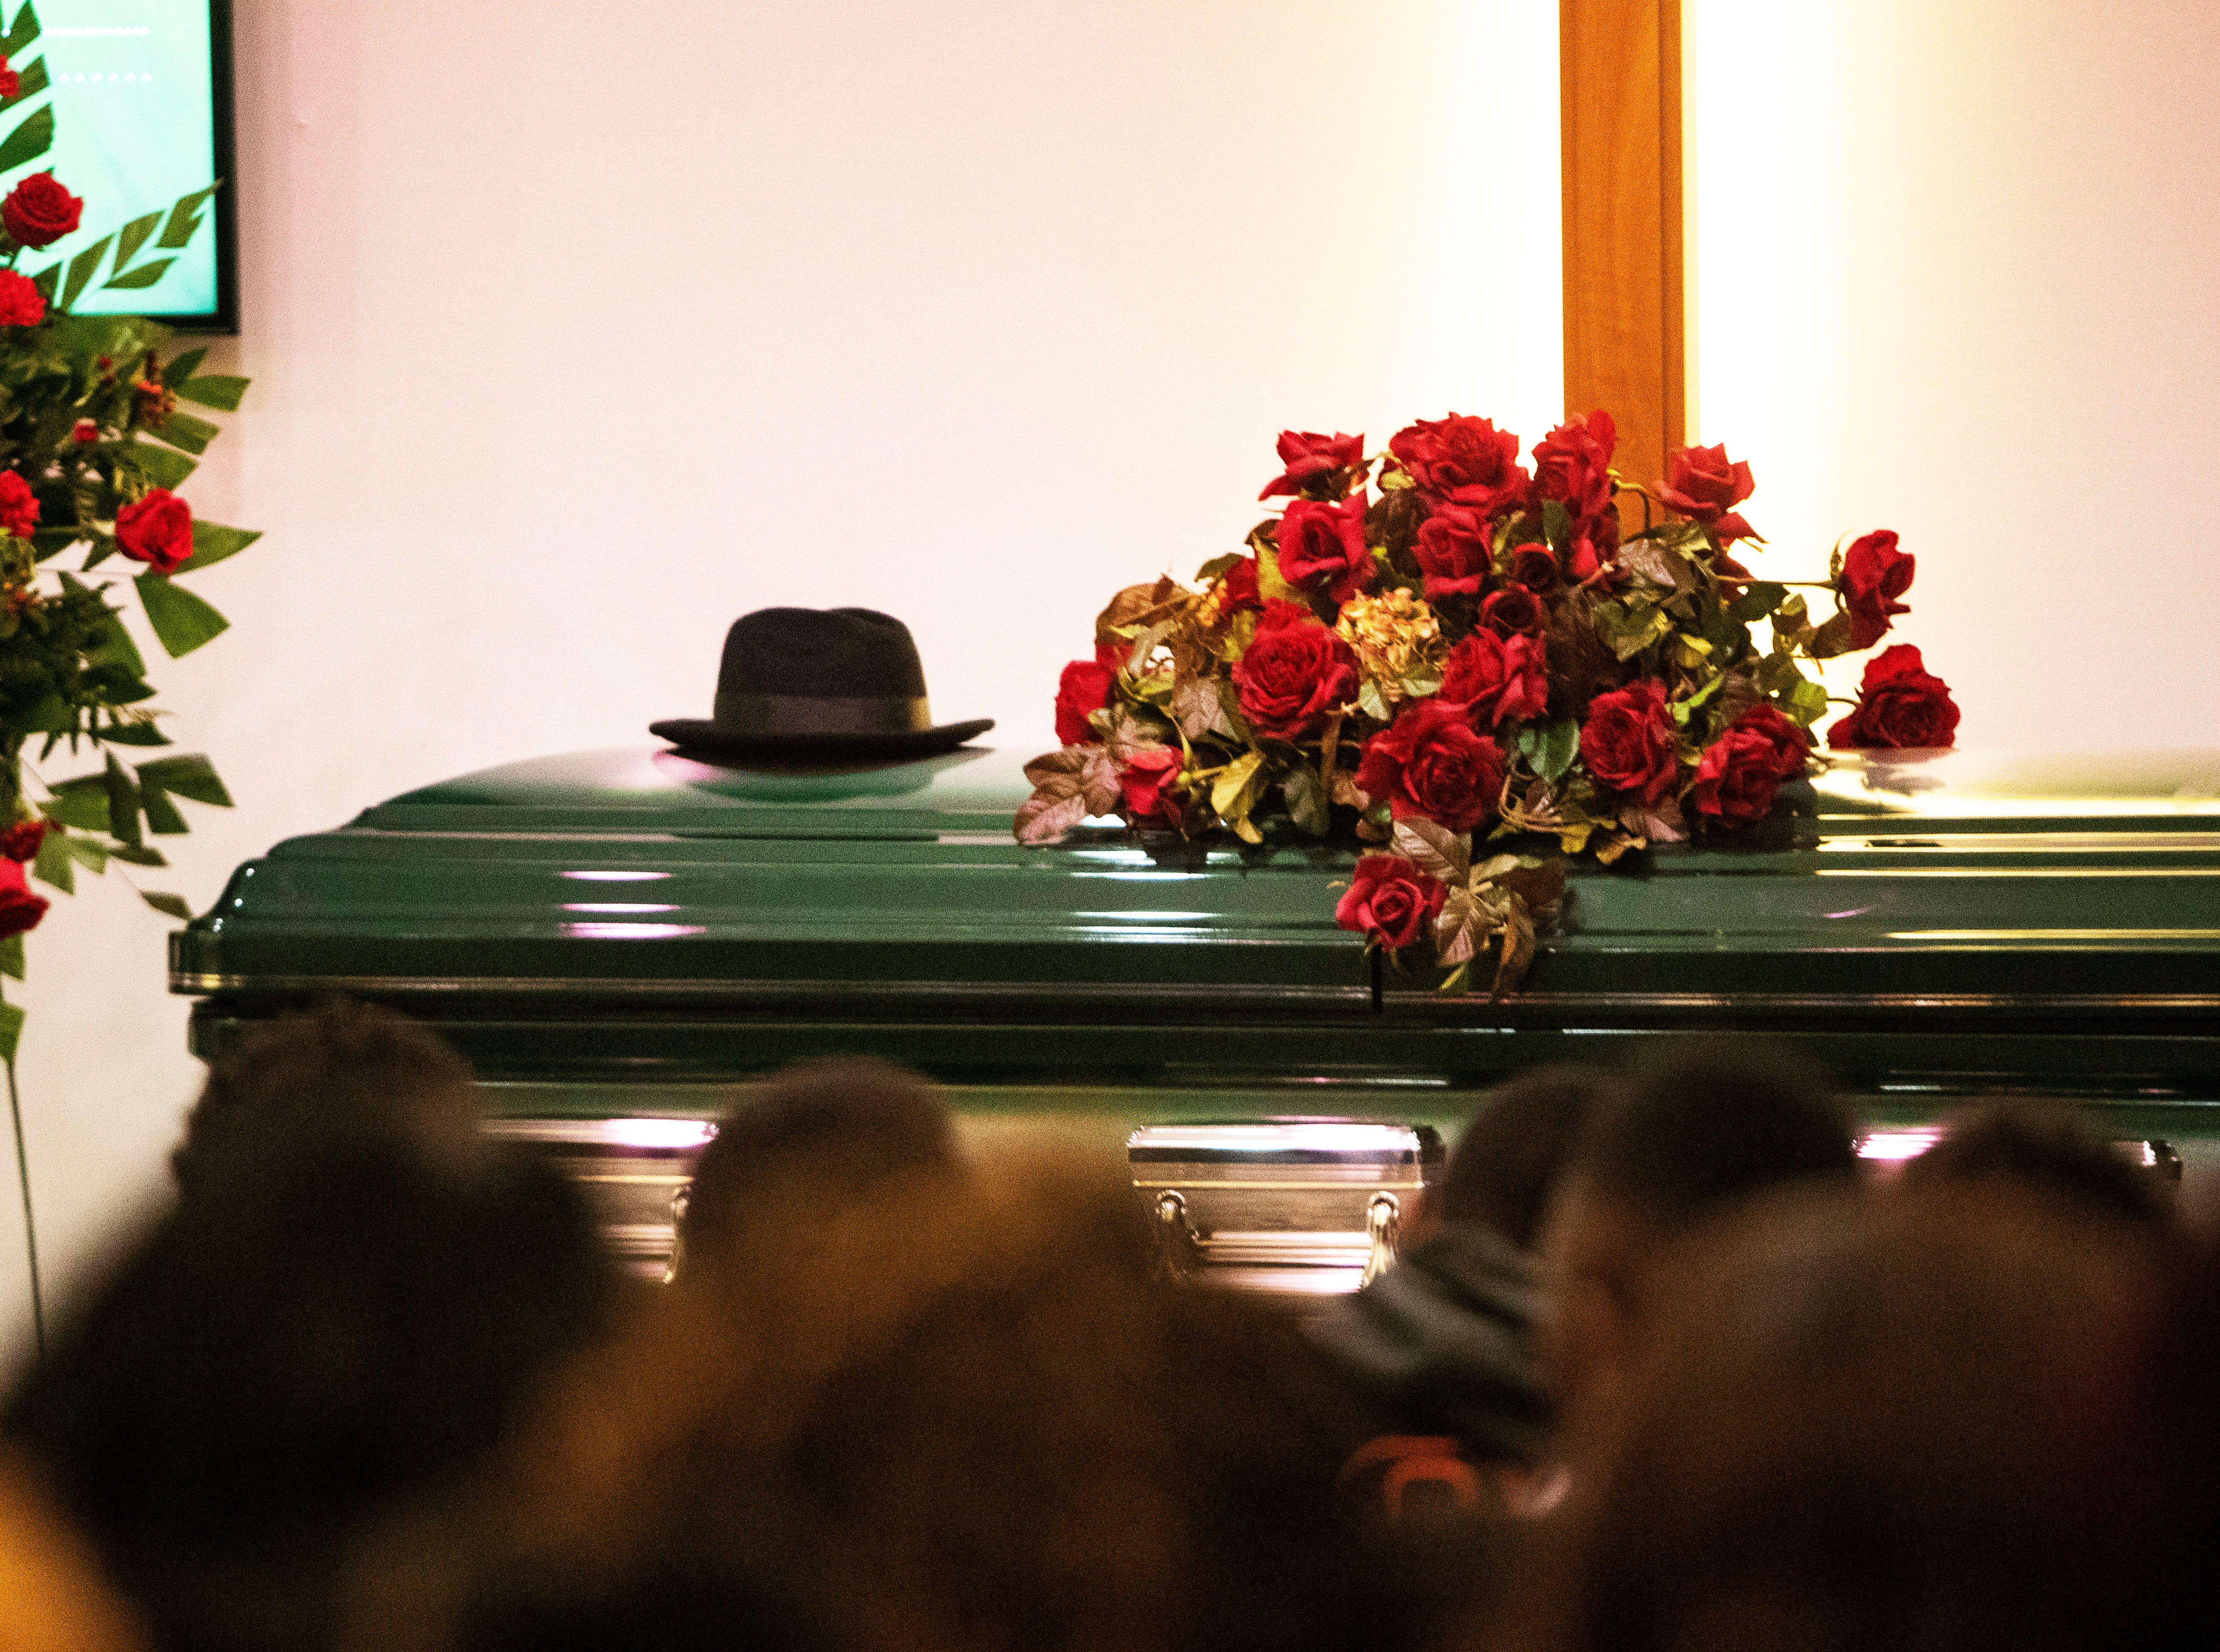 9-year-old Kameren Johnson is laid to rest at Serenity Funeral Home, following bus crash, Saturday, Dec. 15, 2018.